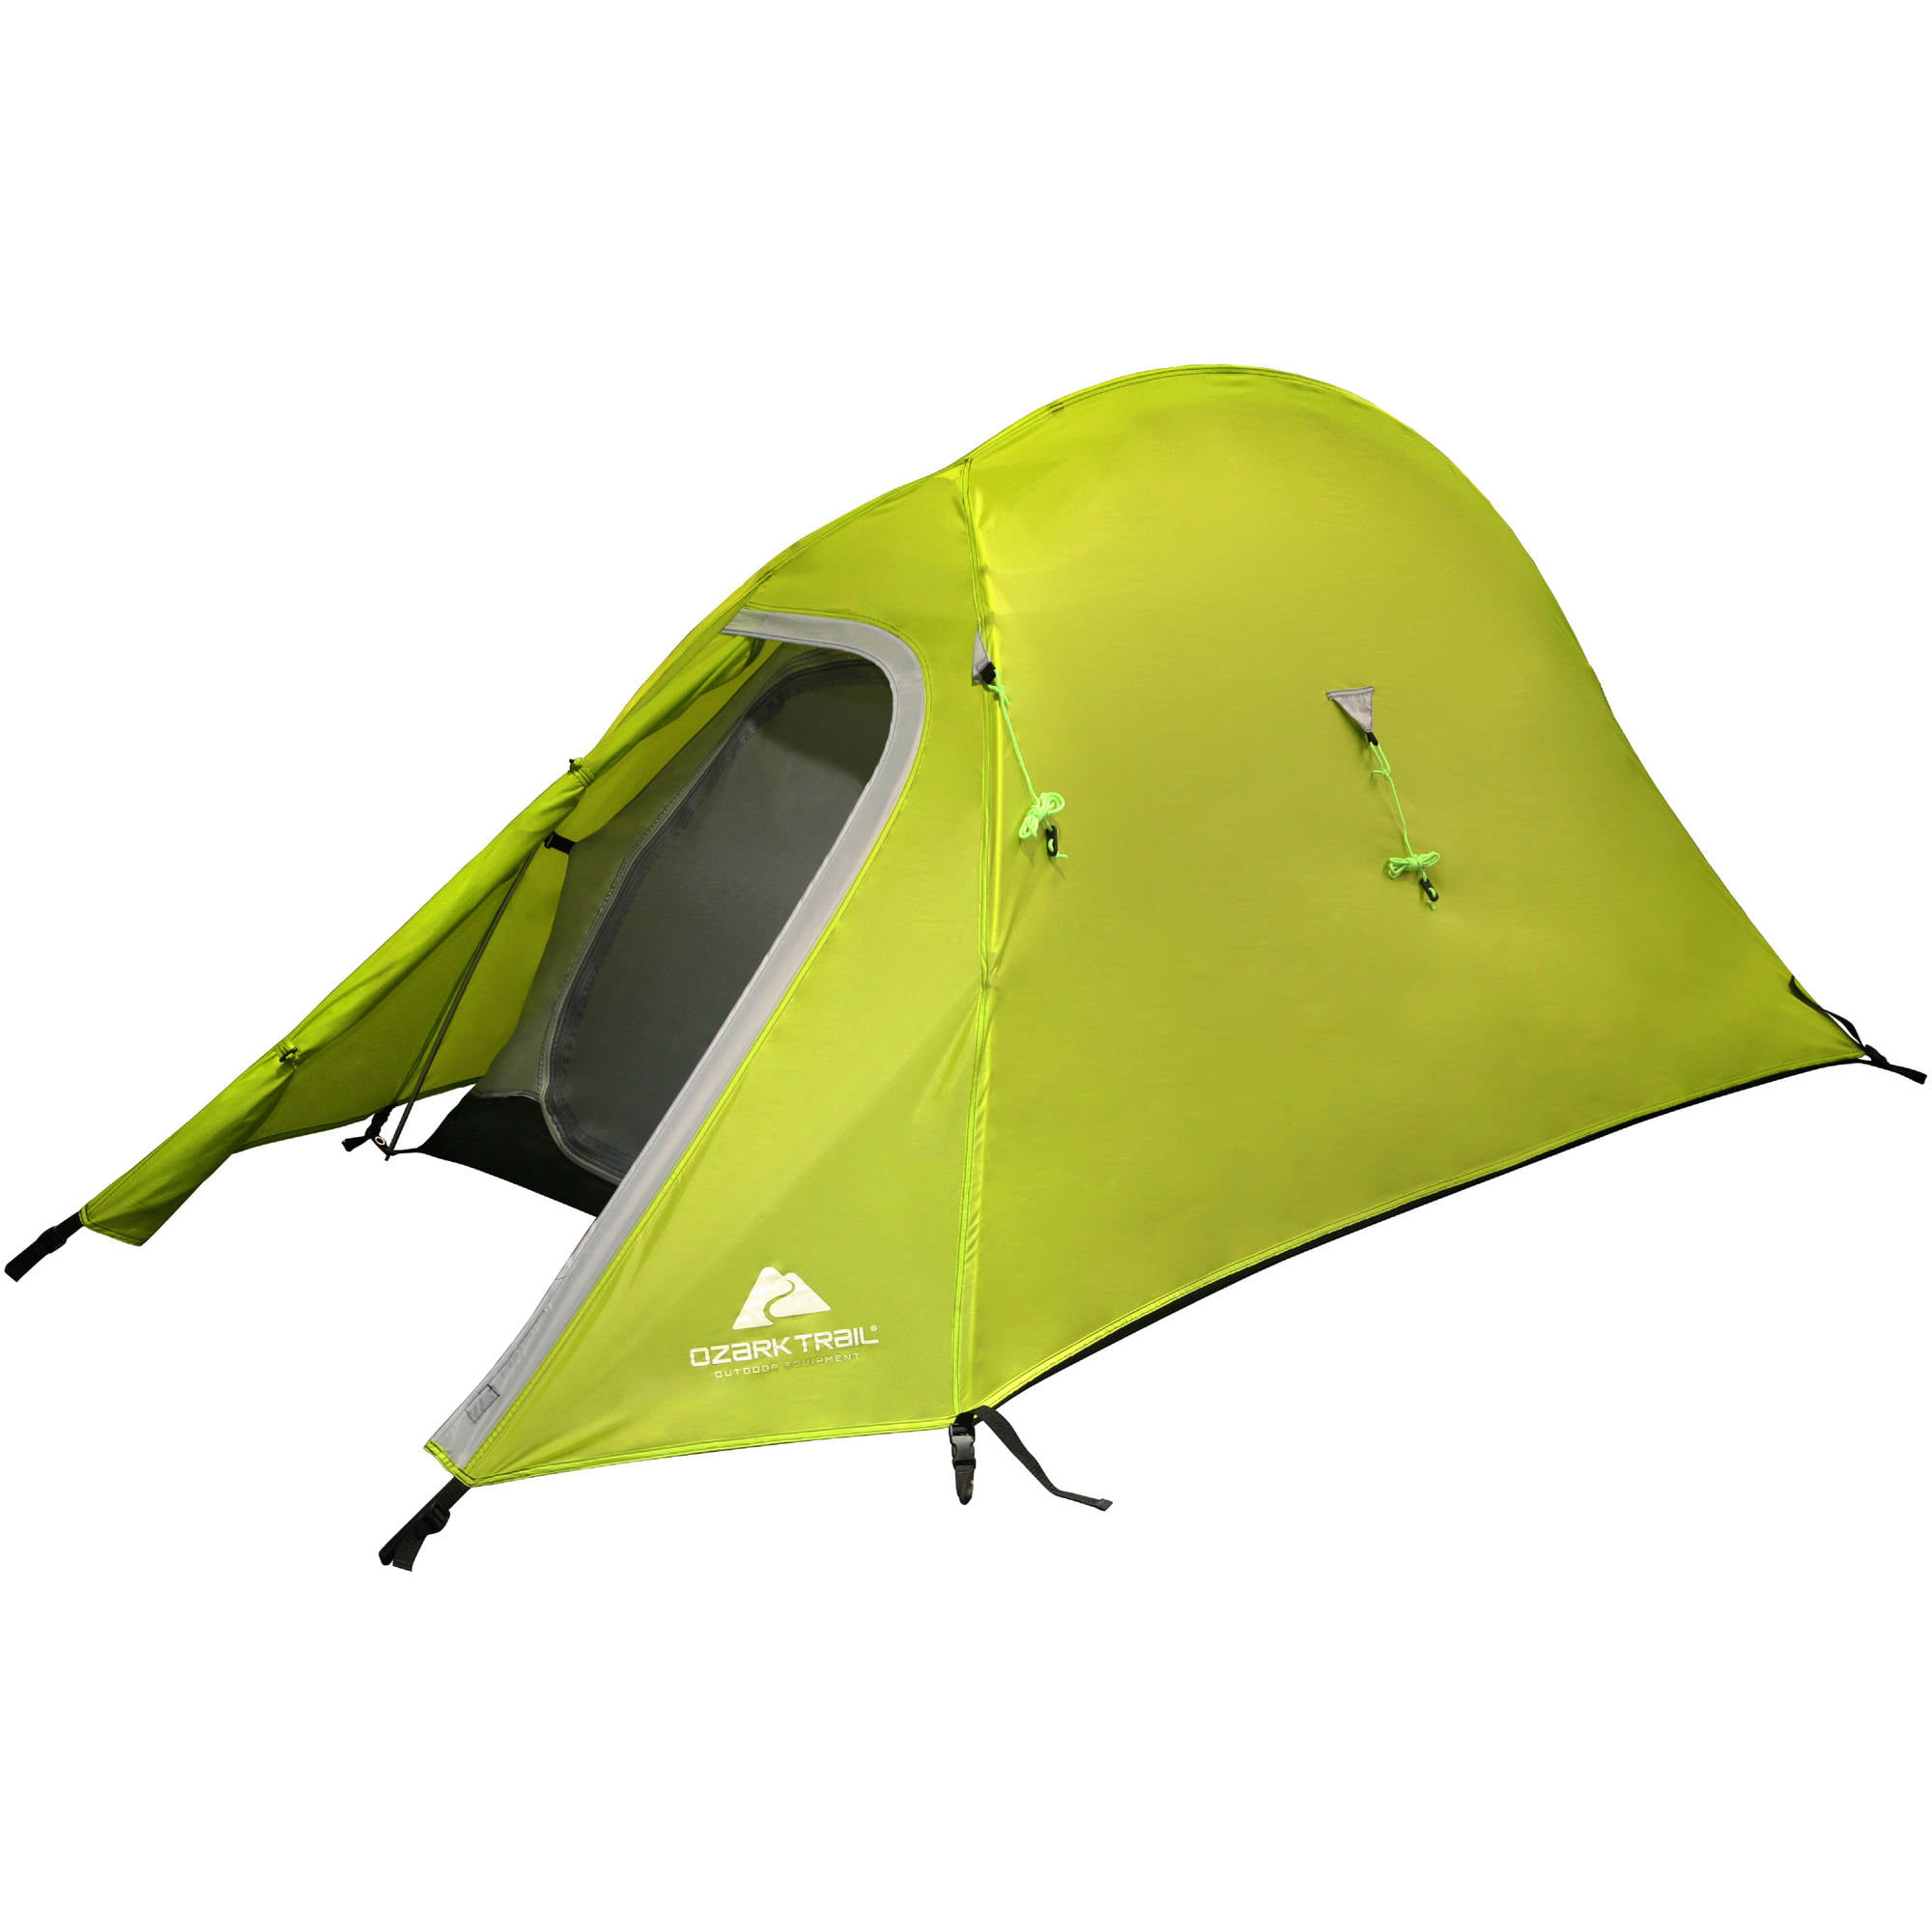 Ozark Trail Ultra Light Back Packing 4u0027 x 7u0027 x 42  Tent with Full Fly Sleeps 1 Green - Walmart.com  sc 1 st  Walmart : light hiking tent - memphite.com